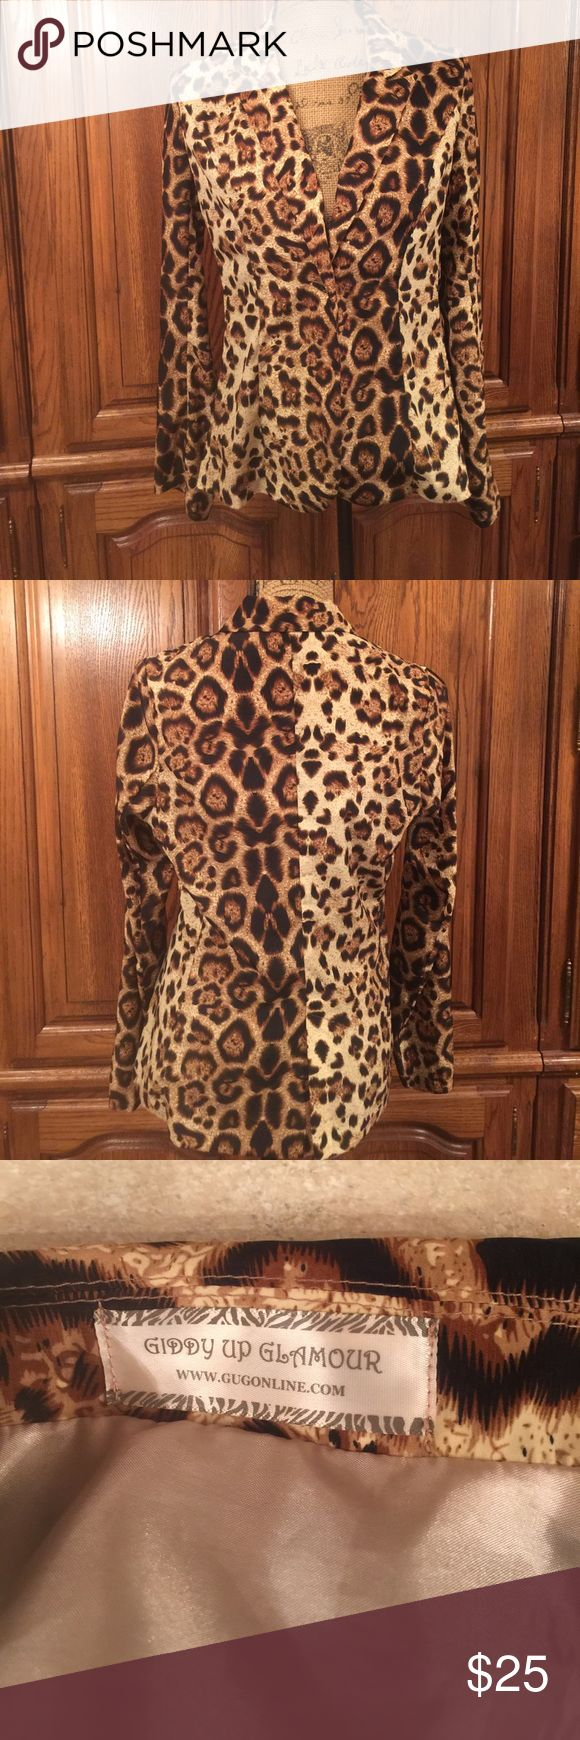 "Giddy up Glamour Animal Print Blazer EUC size large made of 100% polyester. One button closure. No pockets. This is very lightweight. It measures approximately 19"" flat underarm to underarm and the waist measures approximately 16"" flat. The hips measure approximately 18"" flat. It measures approximately 24.5"" long measured from shoulder to hem and the sleeves measure approximately 24"" long. The shoulders measure approximately 15"" flat Giddy Up Glamour Jackets & Coats Blazers"